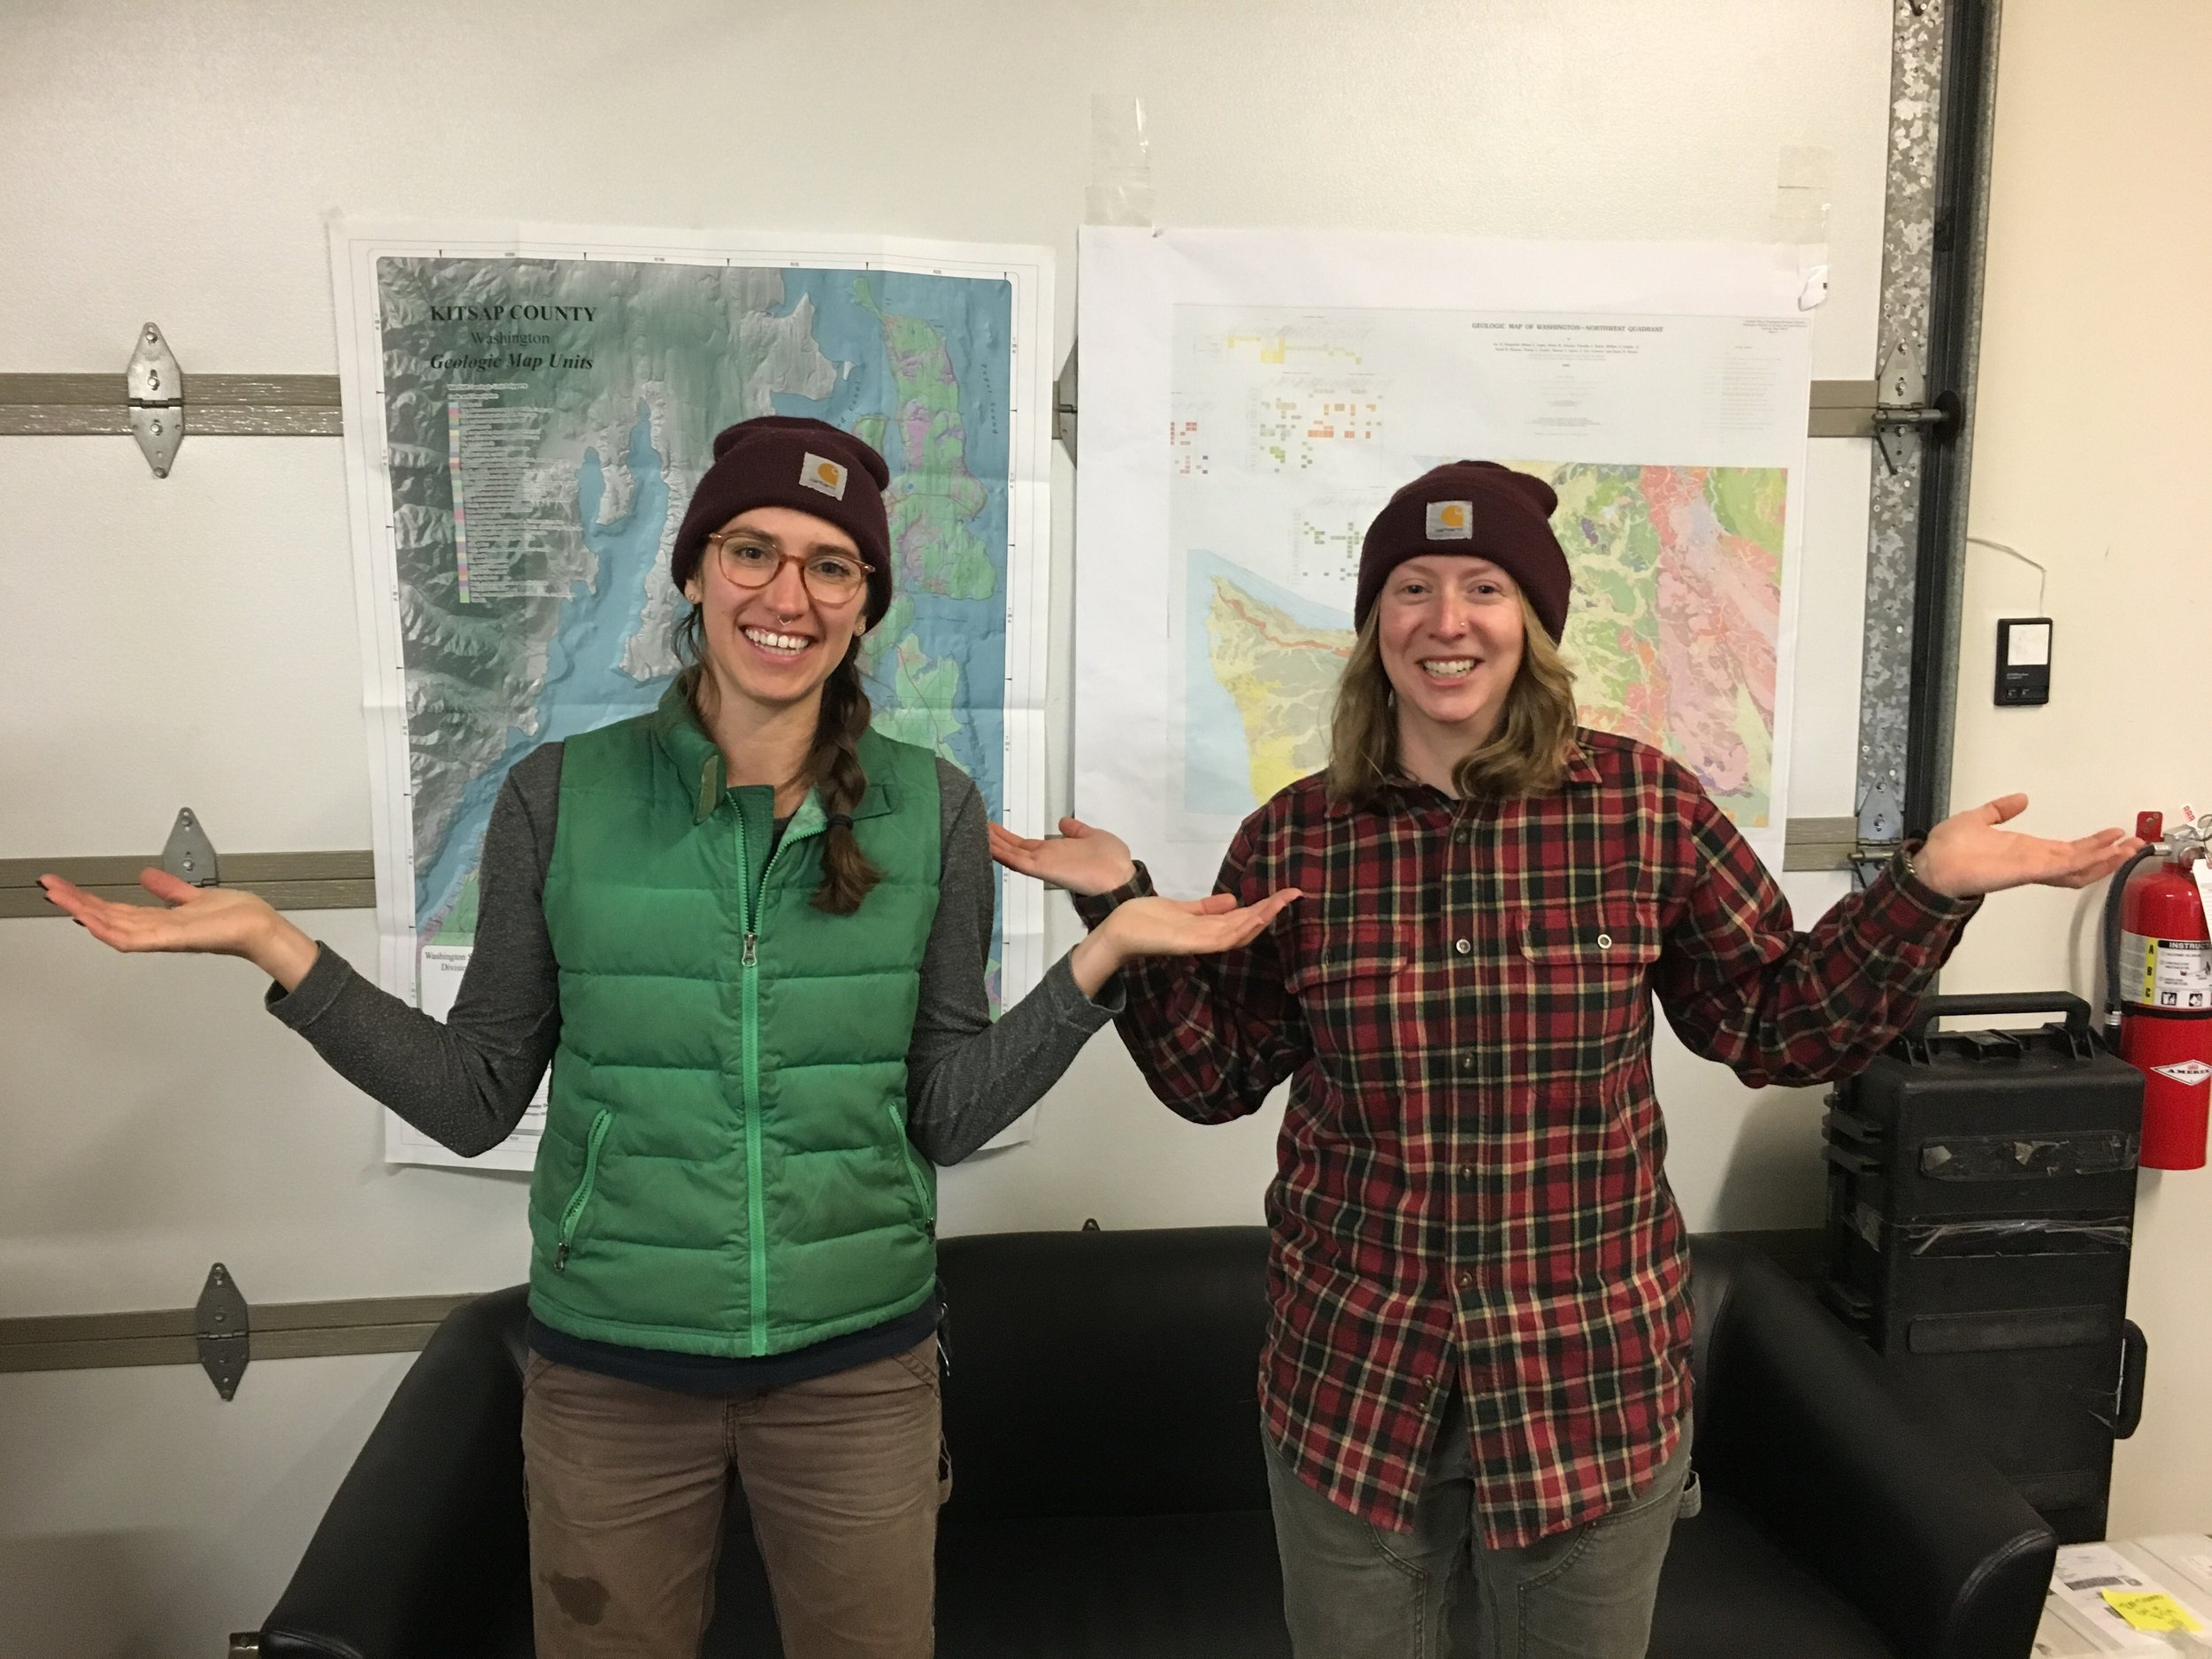 Breeyn Greer, EIT, Staff Environmental Engineer (left) and Amelia Oates, GIT – Staff Geologist (right) at Aspect's Field Annex in Seattle